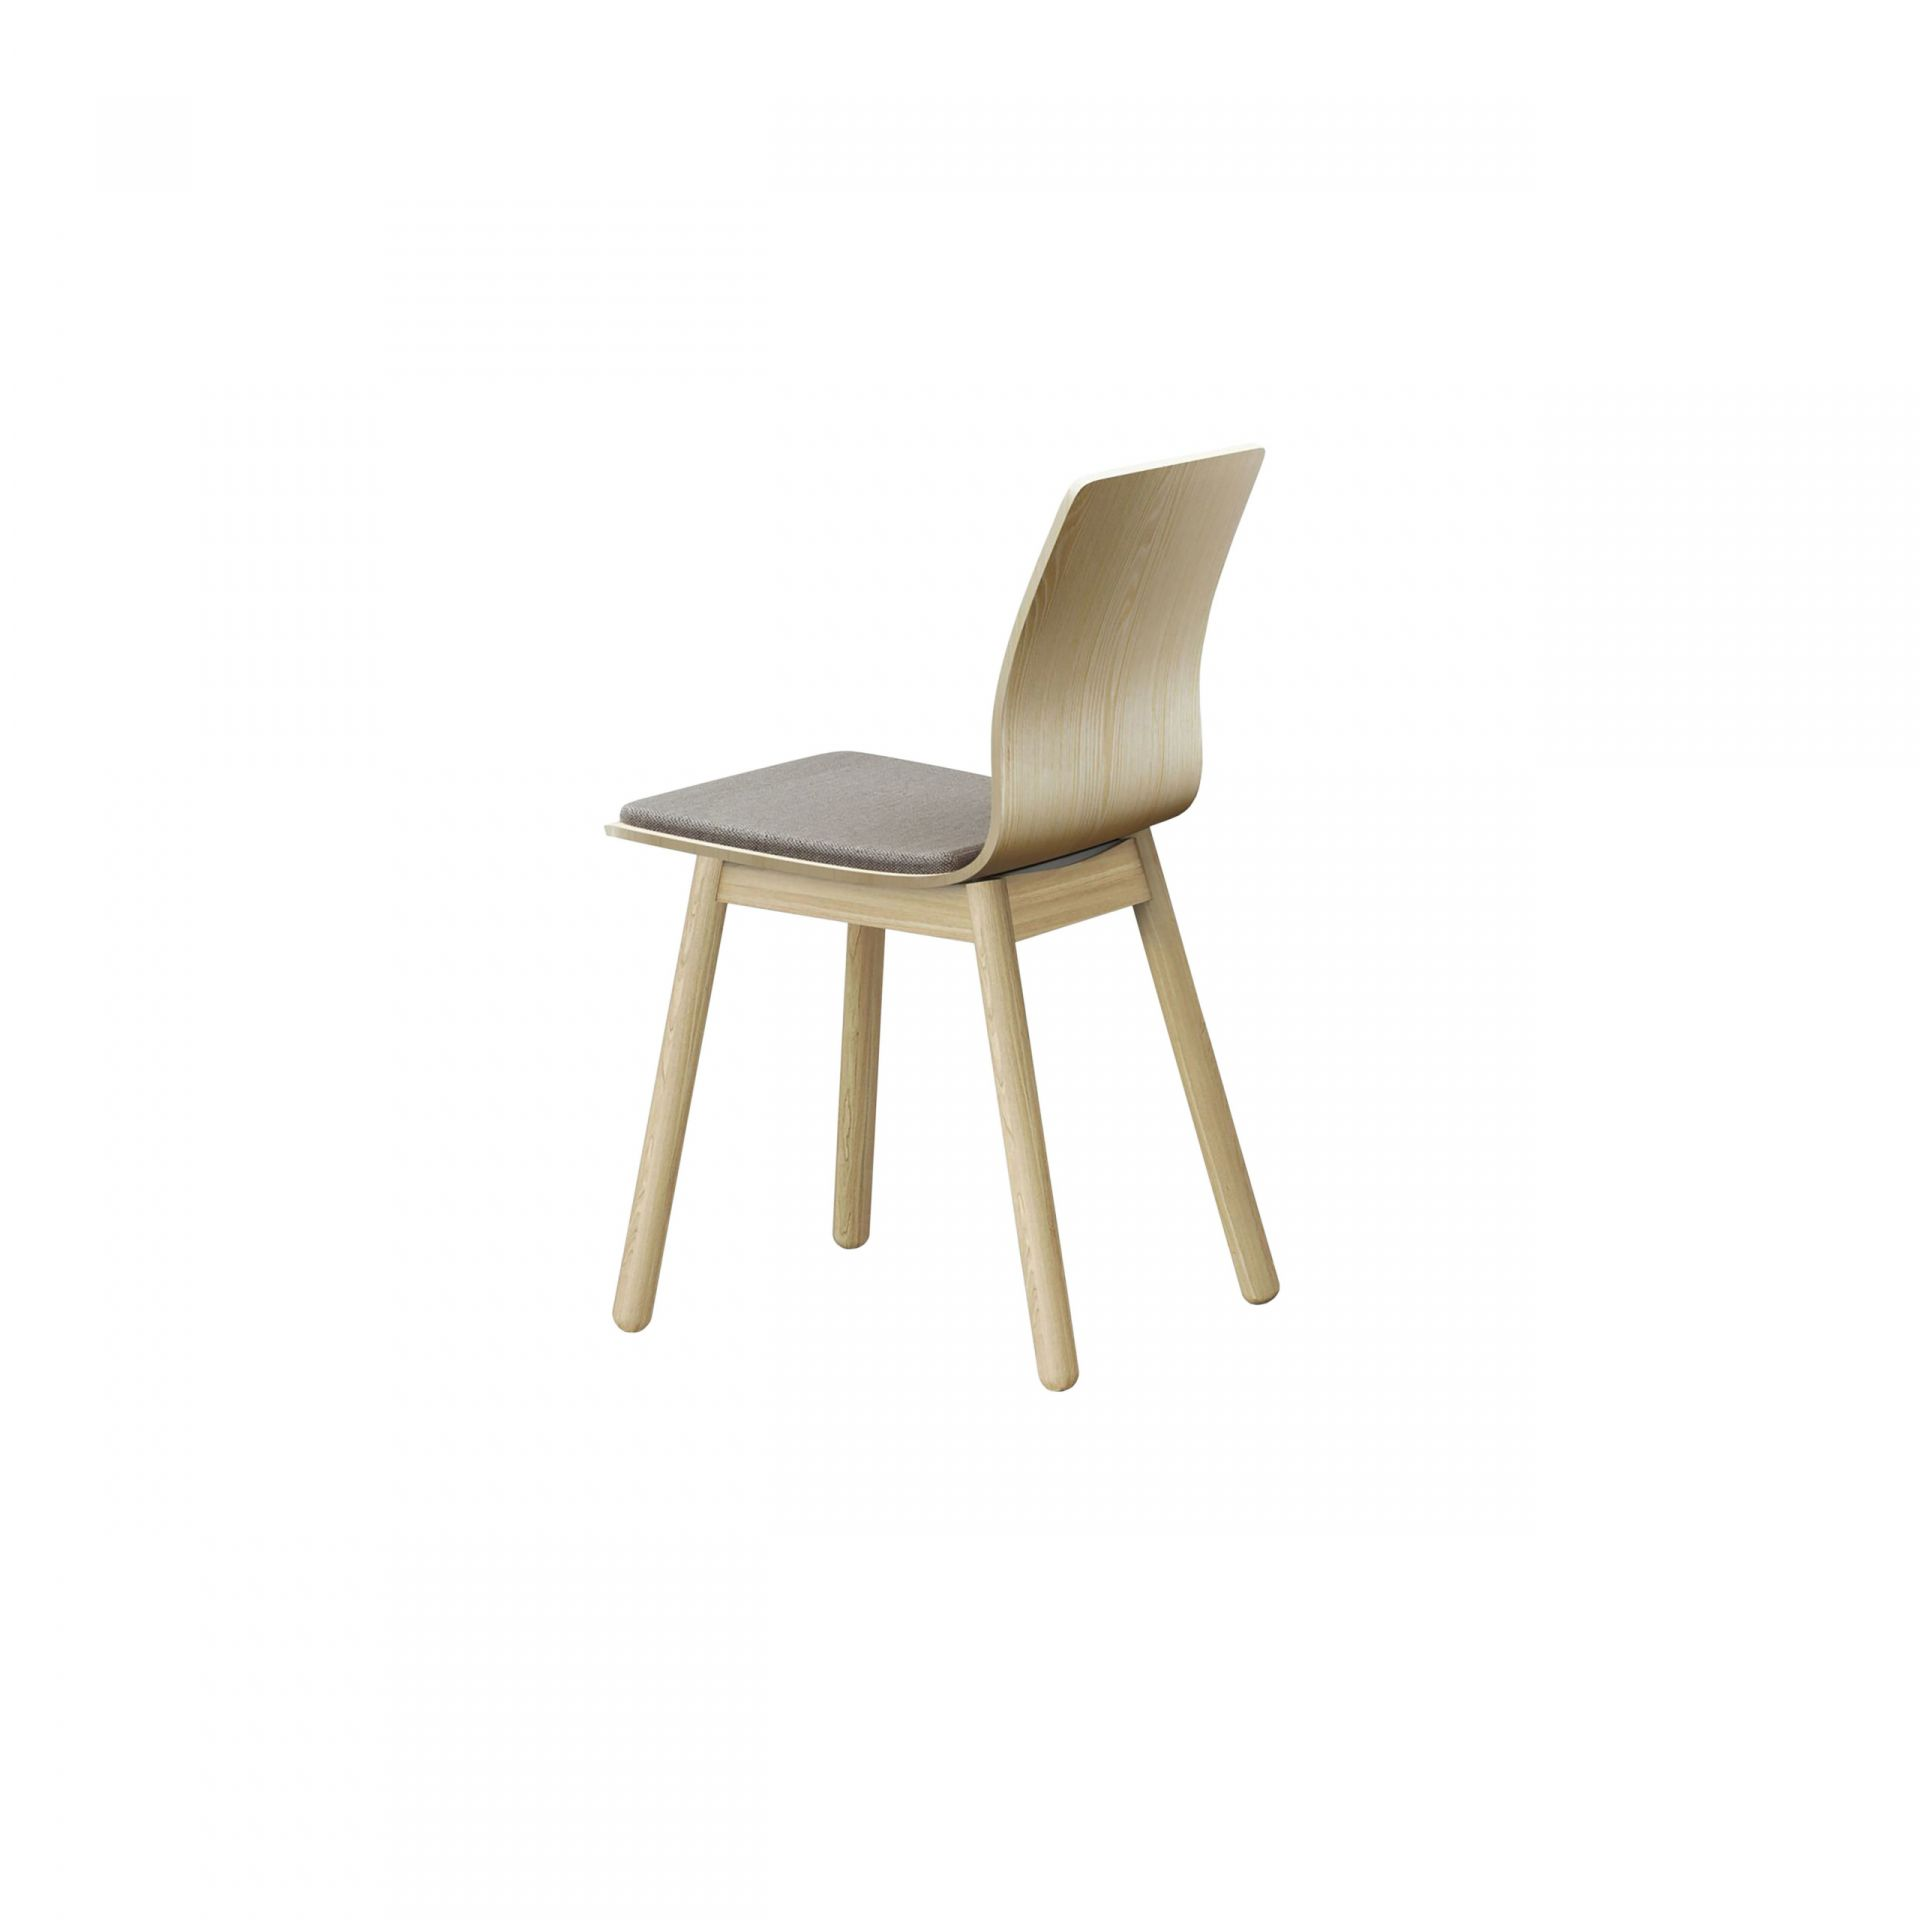 Nova Chair with wooden legs product image 2